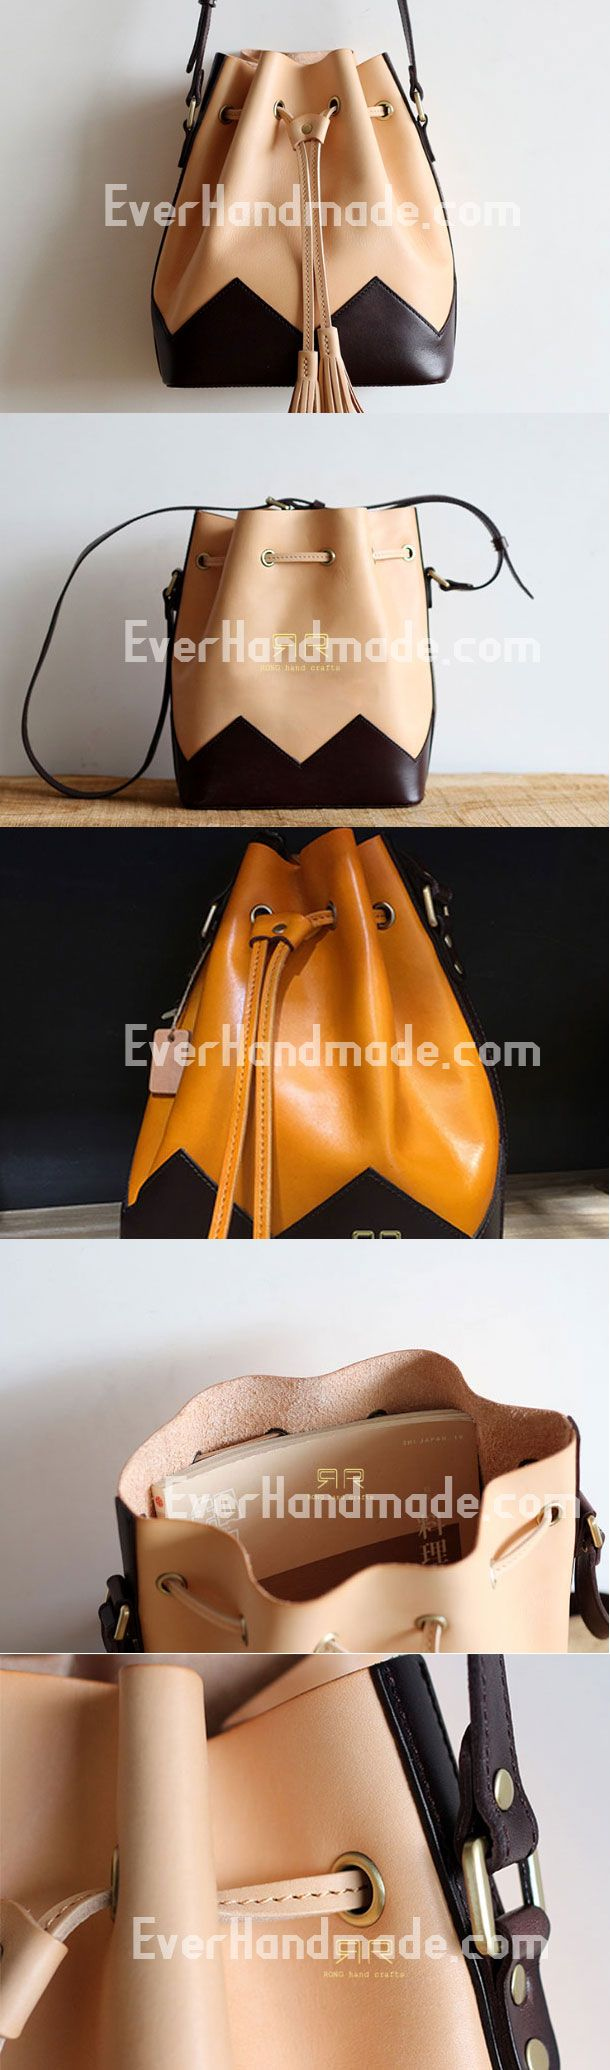 Handmade Leather bucket purse for women crossbody bag leather